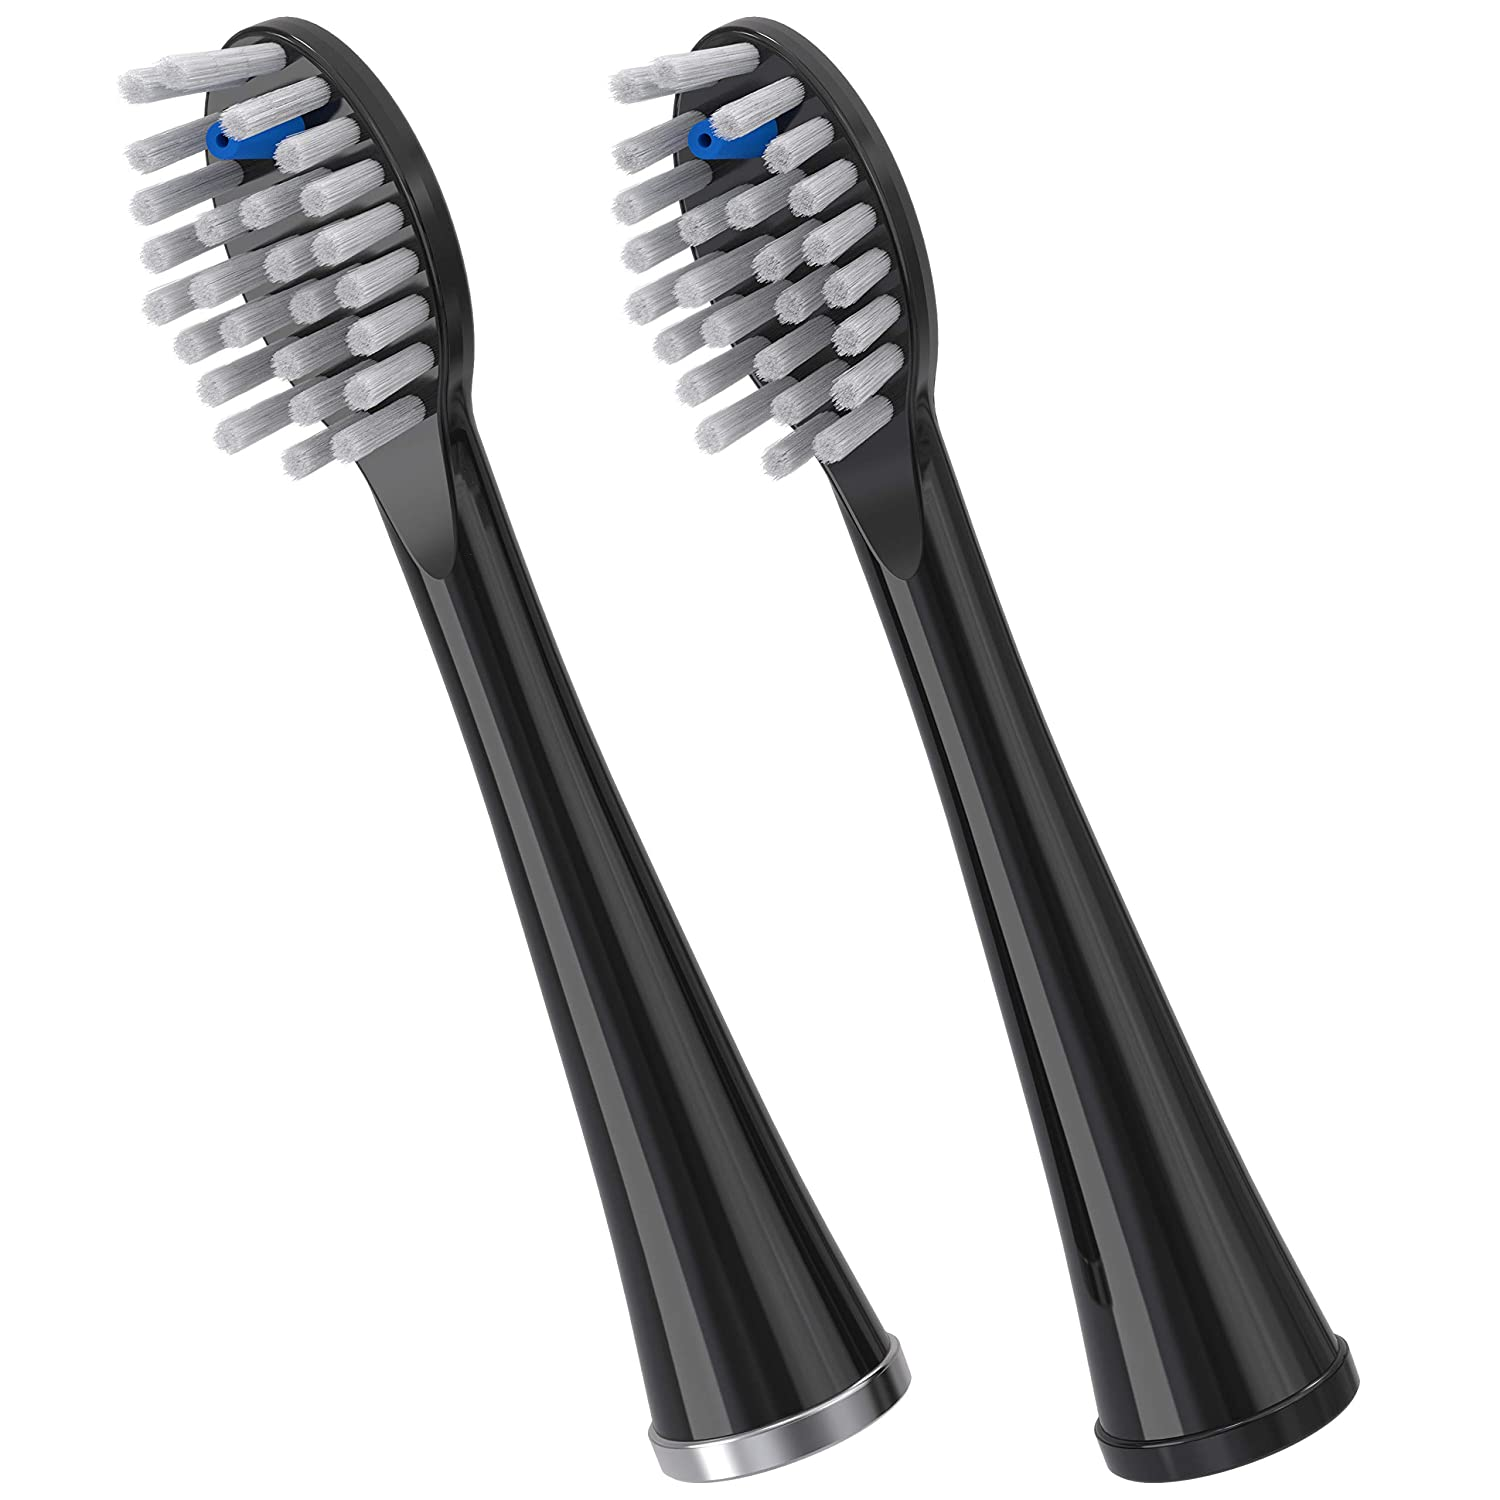 Waterpik Full Size Replacement Brush Heads for Sonic-Fusion Flossing Toothbrush SFFB-2EB, 2 Count Black